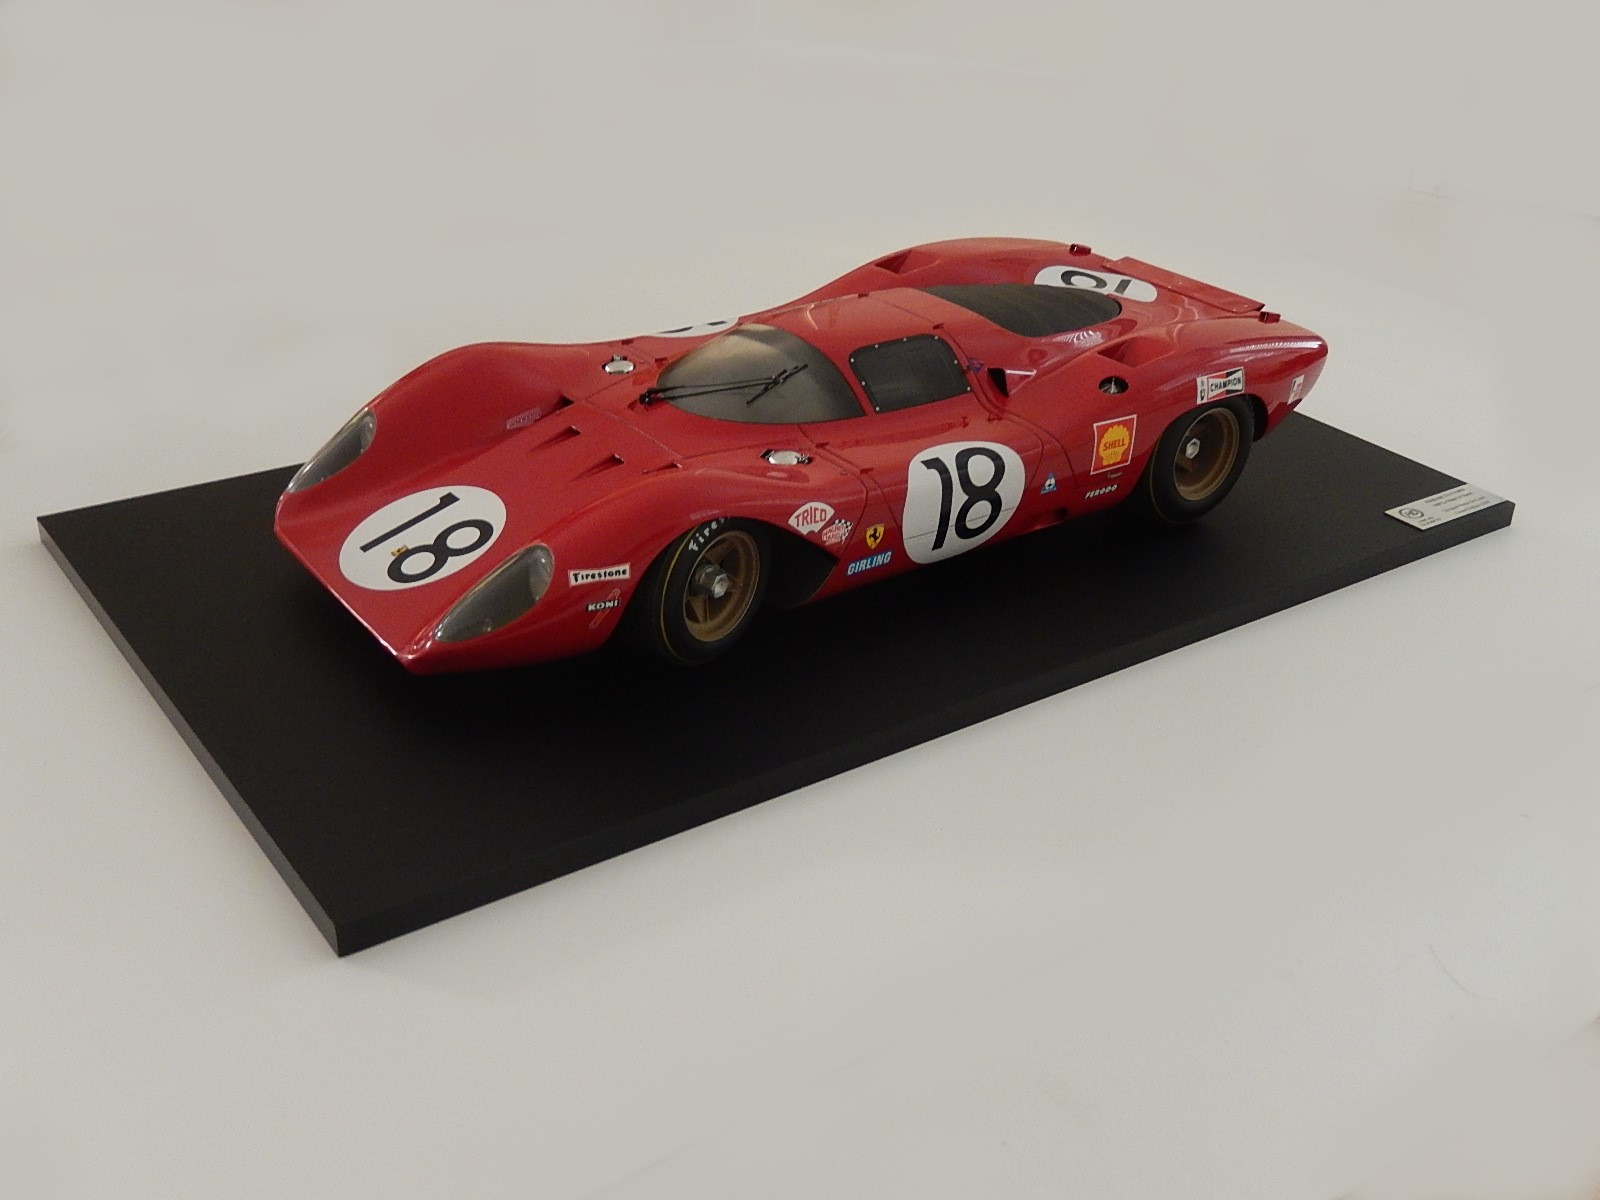 De Conto : Ferrari 312P  Le mans 1969 built by H.Duband part 1